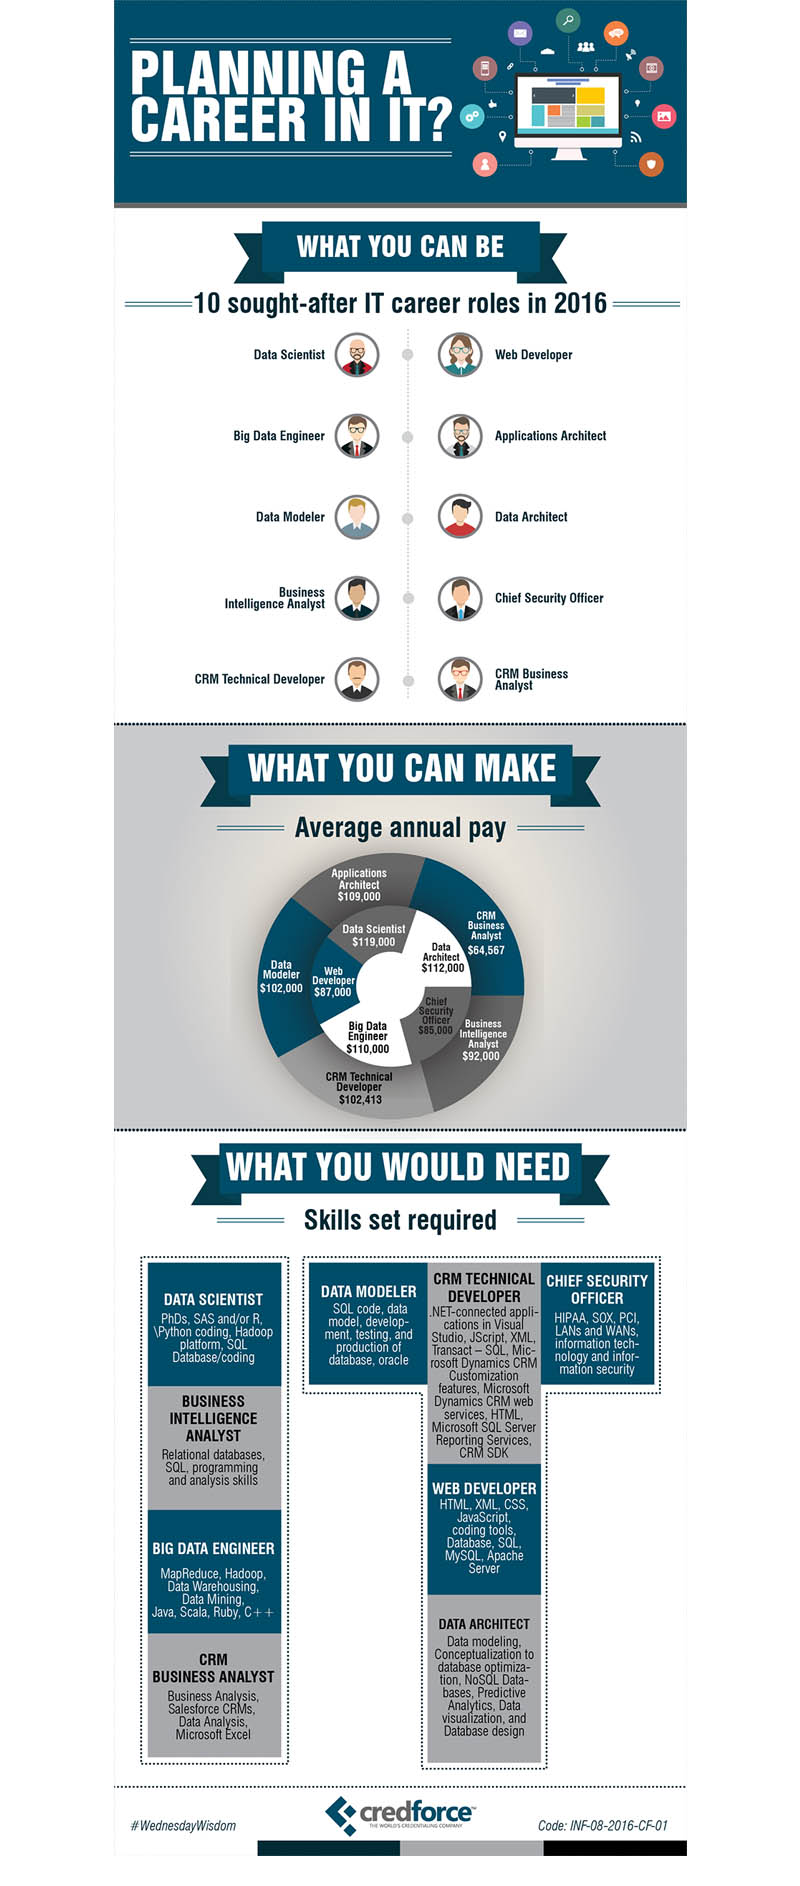 Infographic: Planning a career in IT?